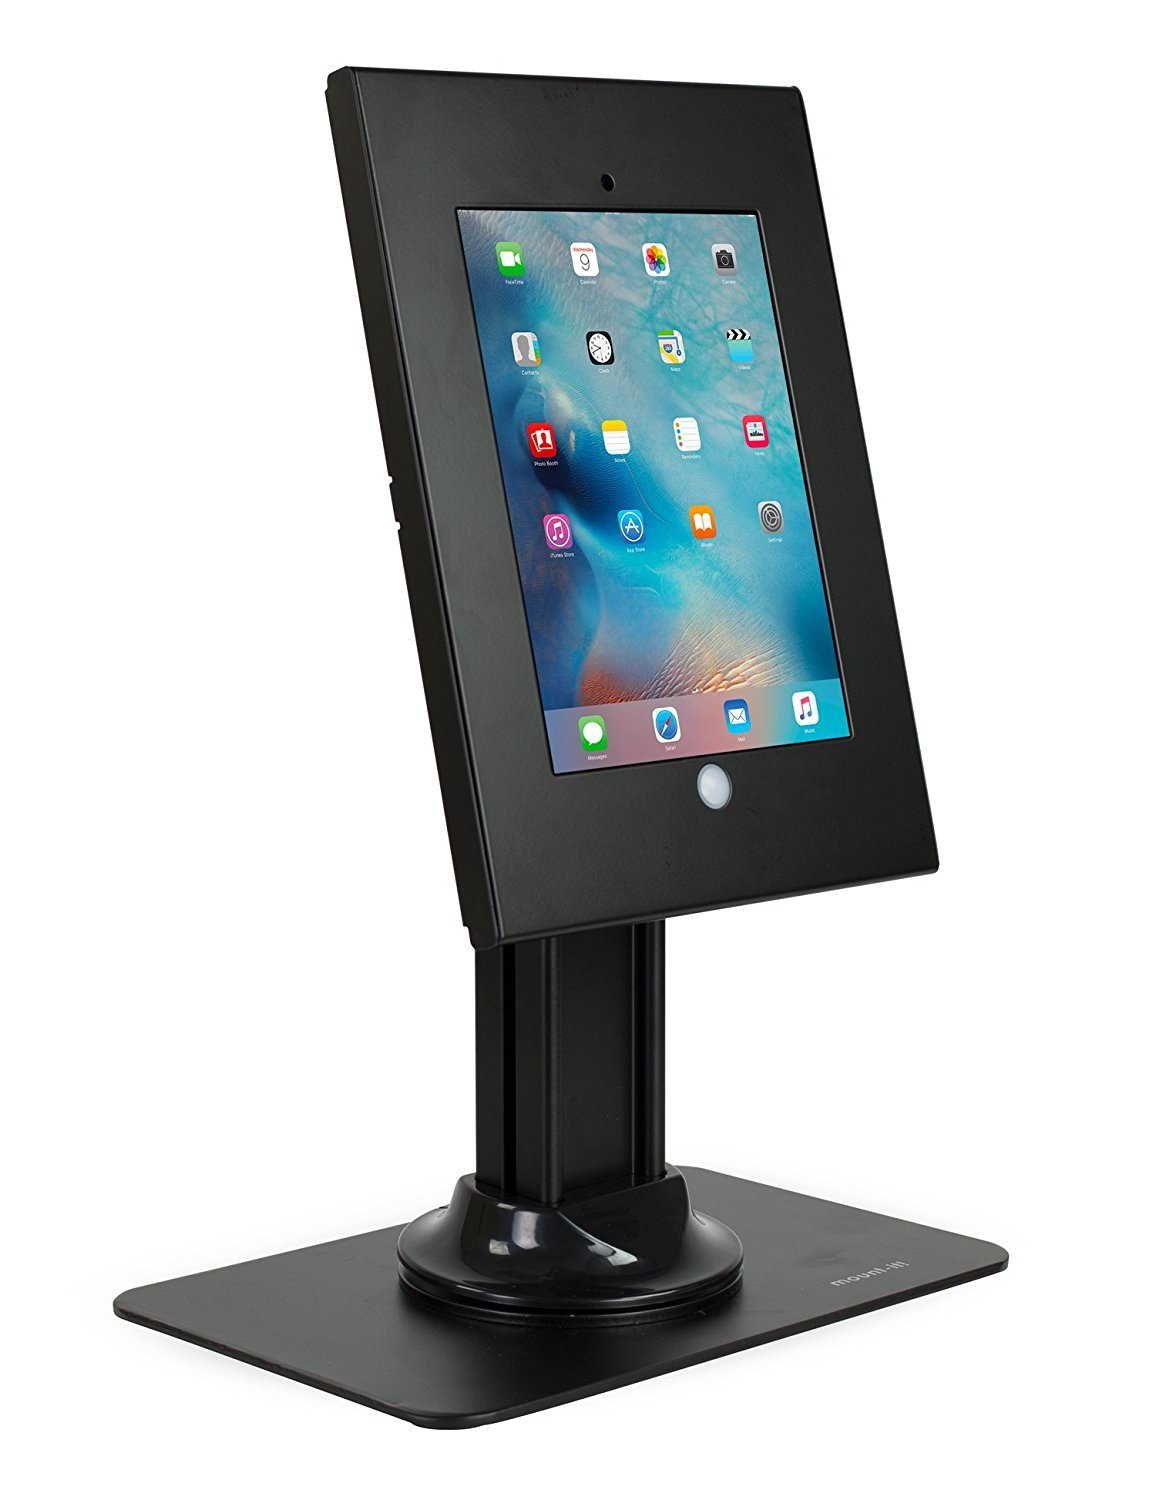 Mount-It! Full Motion iPad Security Stand, Locking Kiosk Tablet Holder, Fits iPad 2, 3, 4, iPad Air, and 9.7 Inch Tablets, Desk Stand, Black